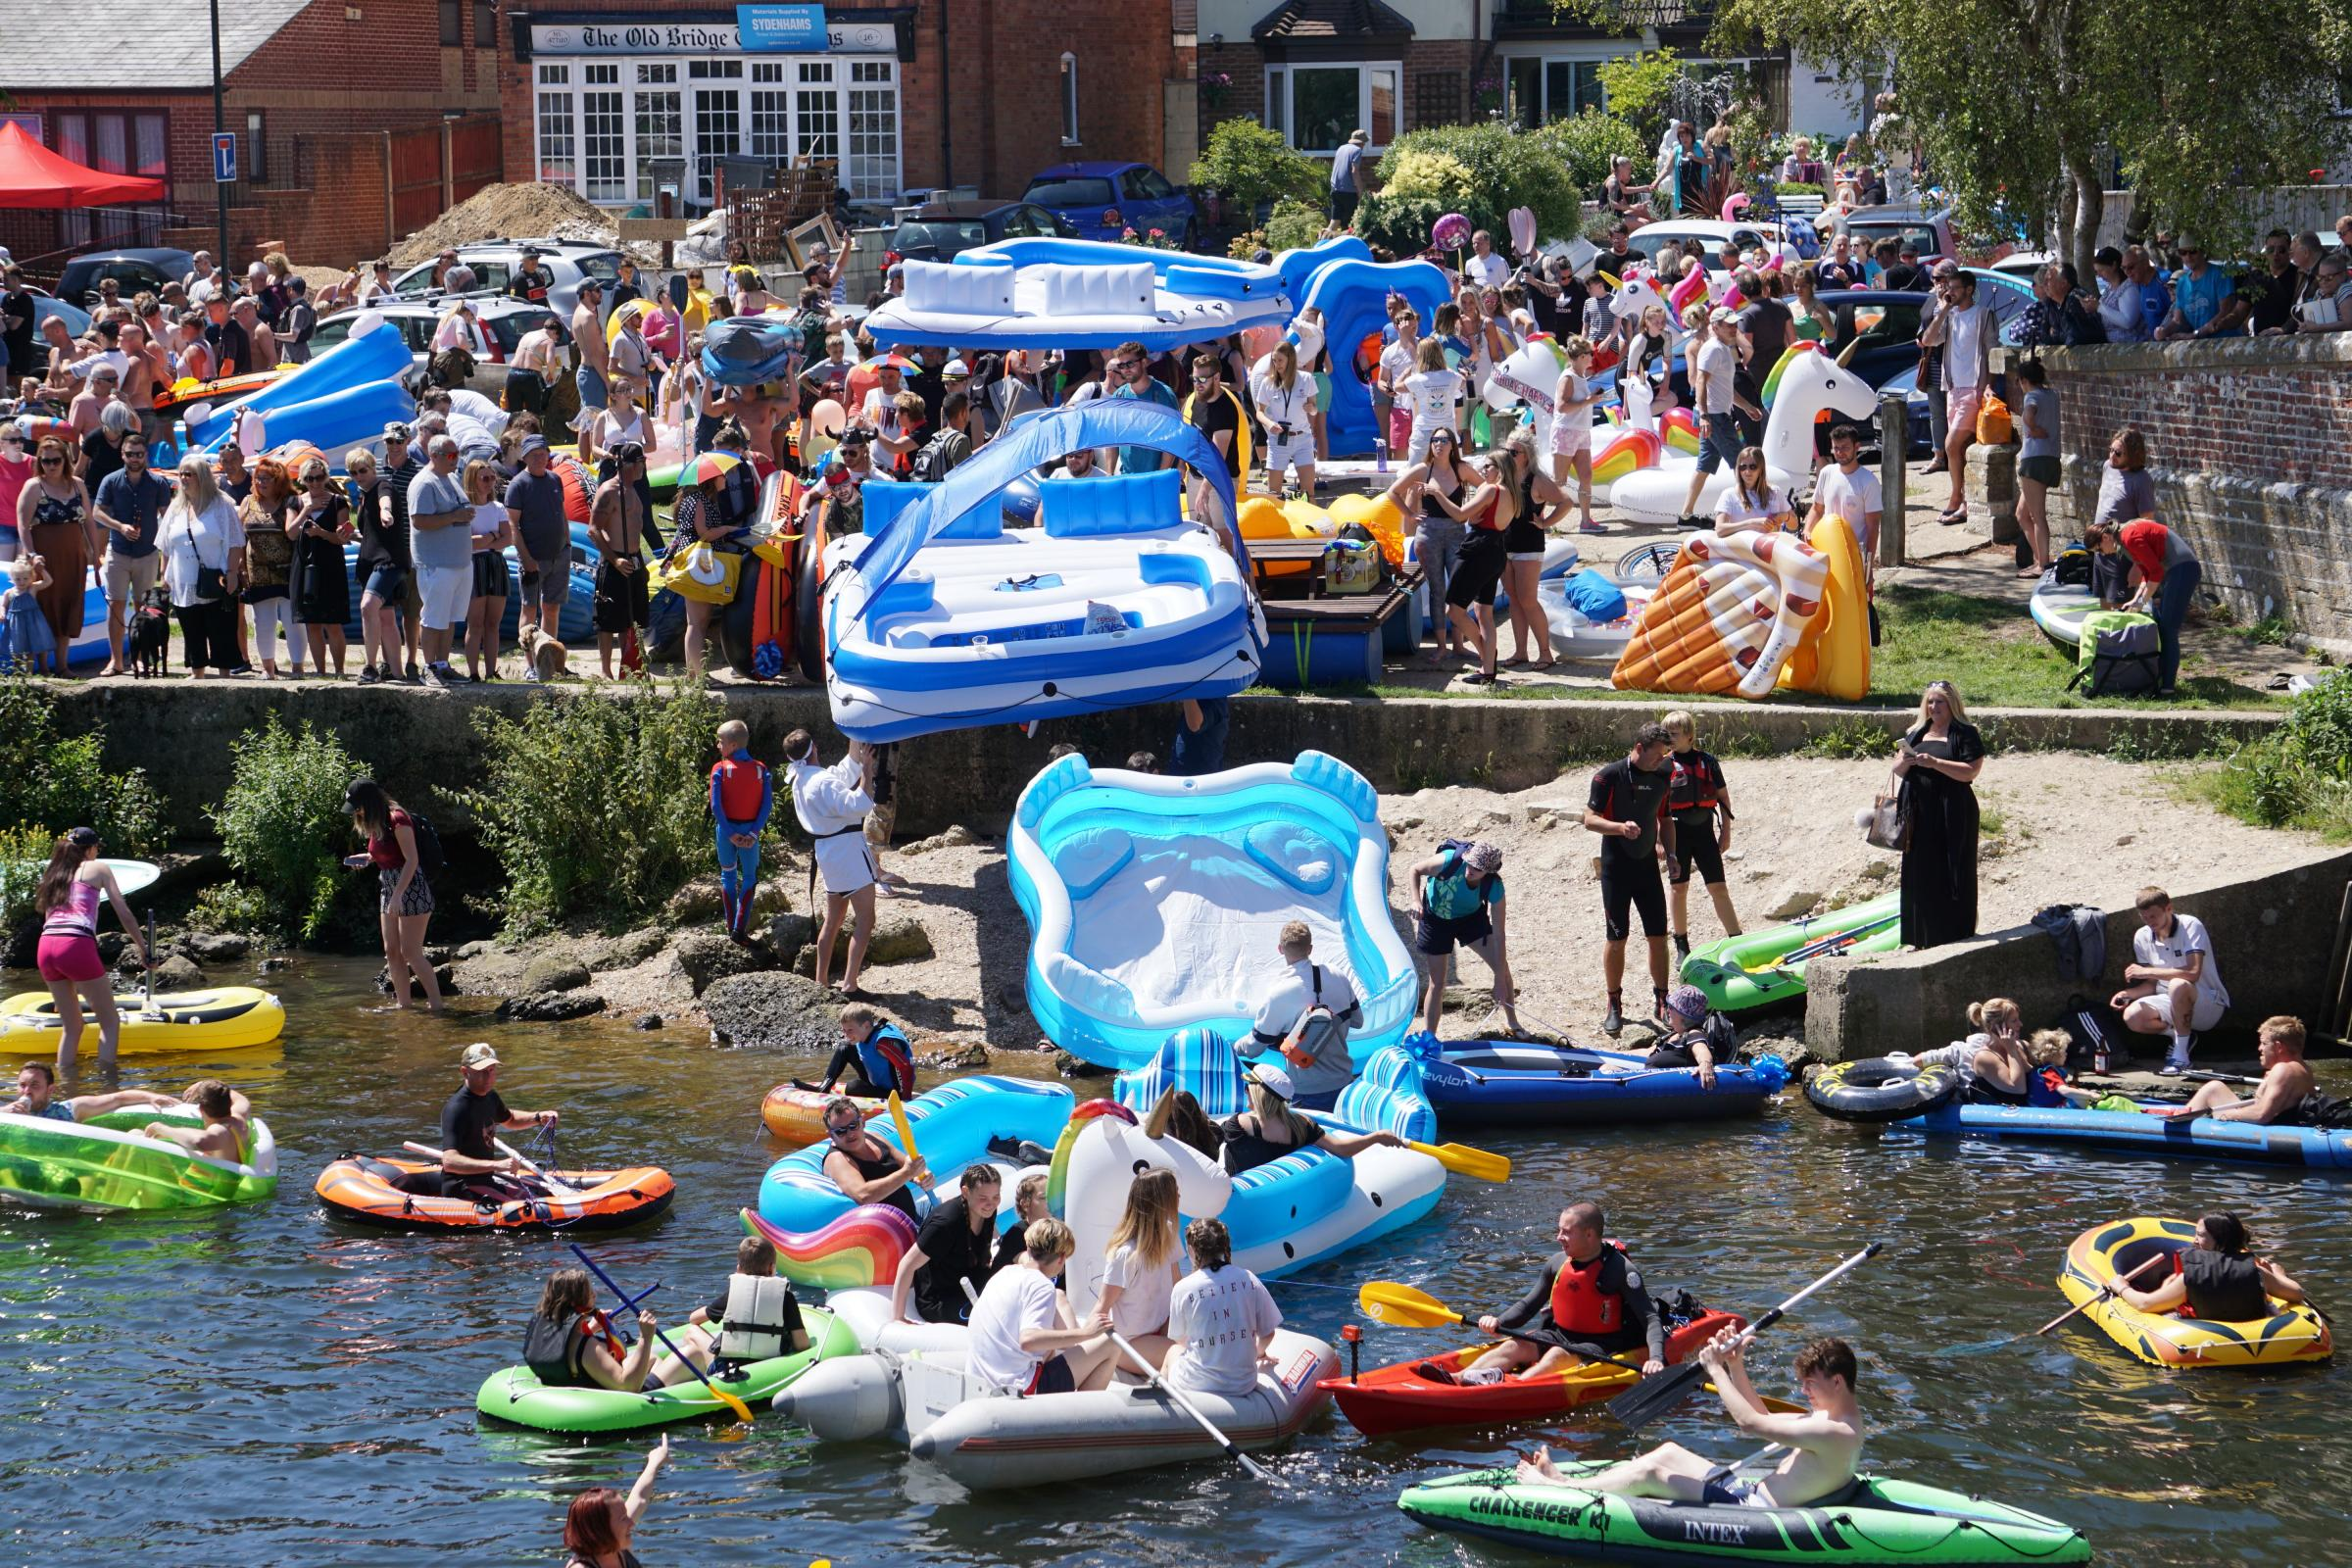 Thousands of people take part in Dorset Dinghy Day on the River Stour